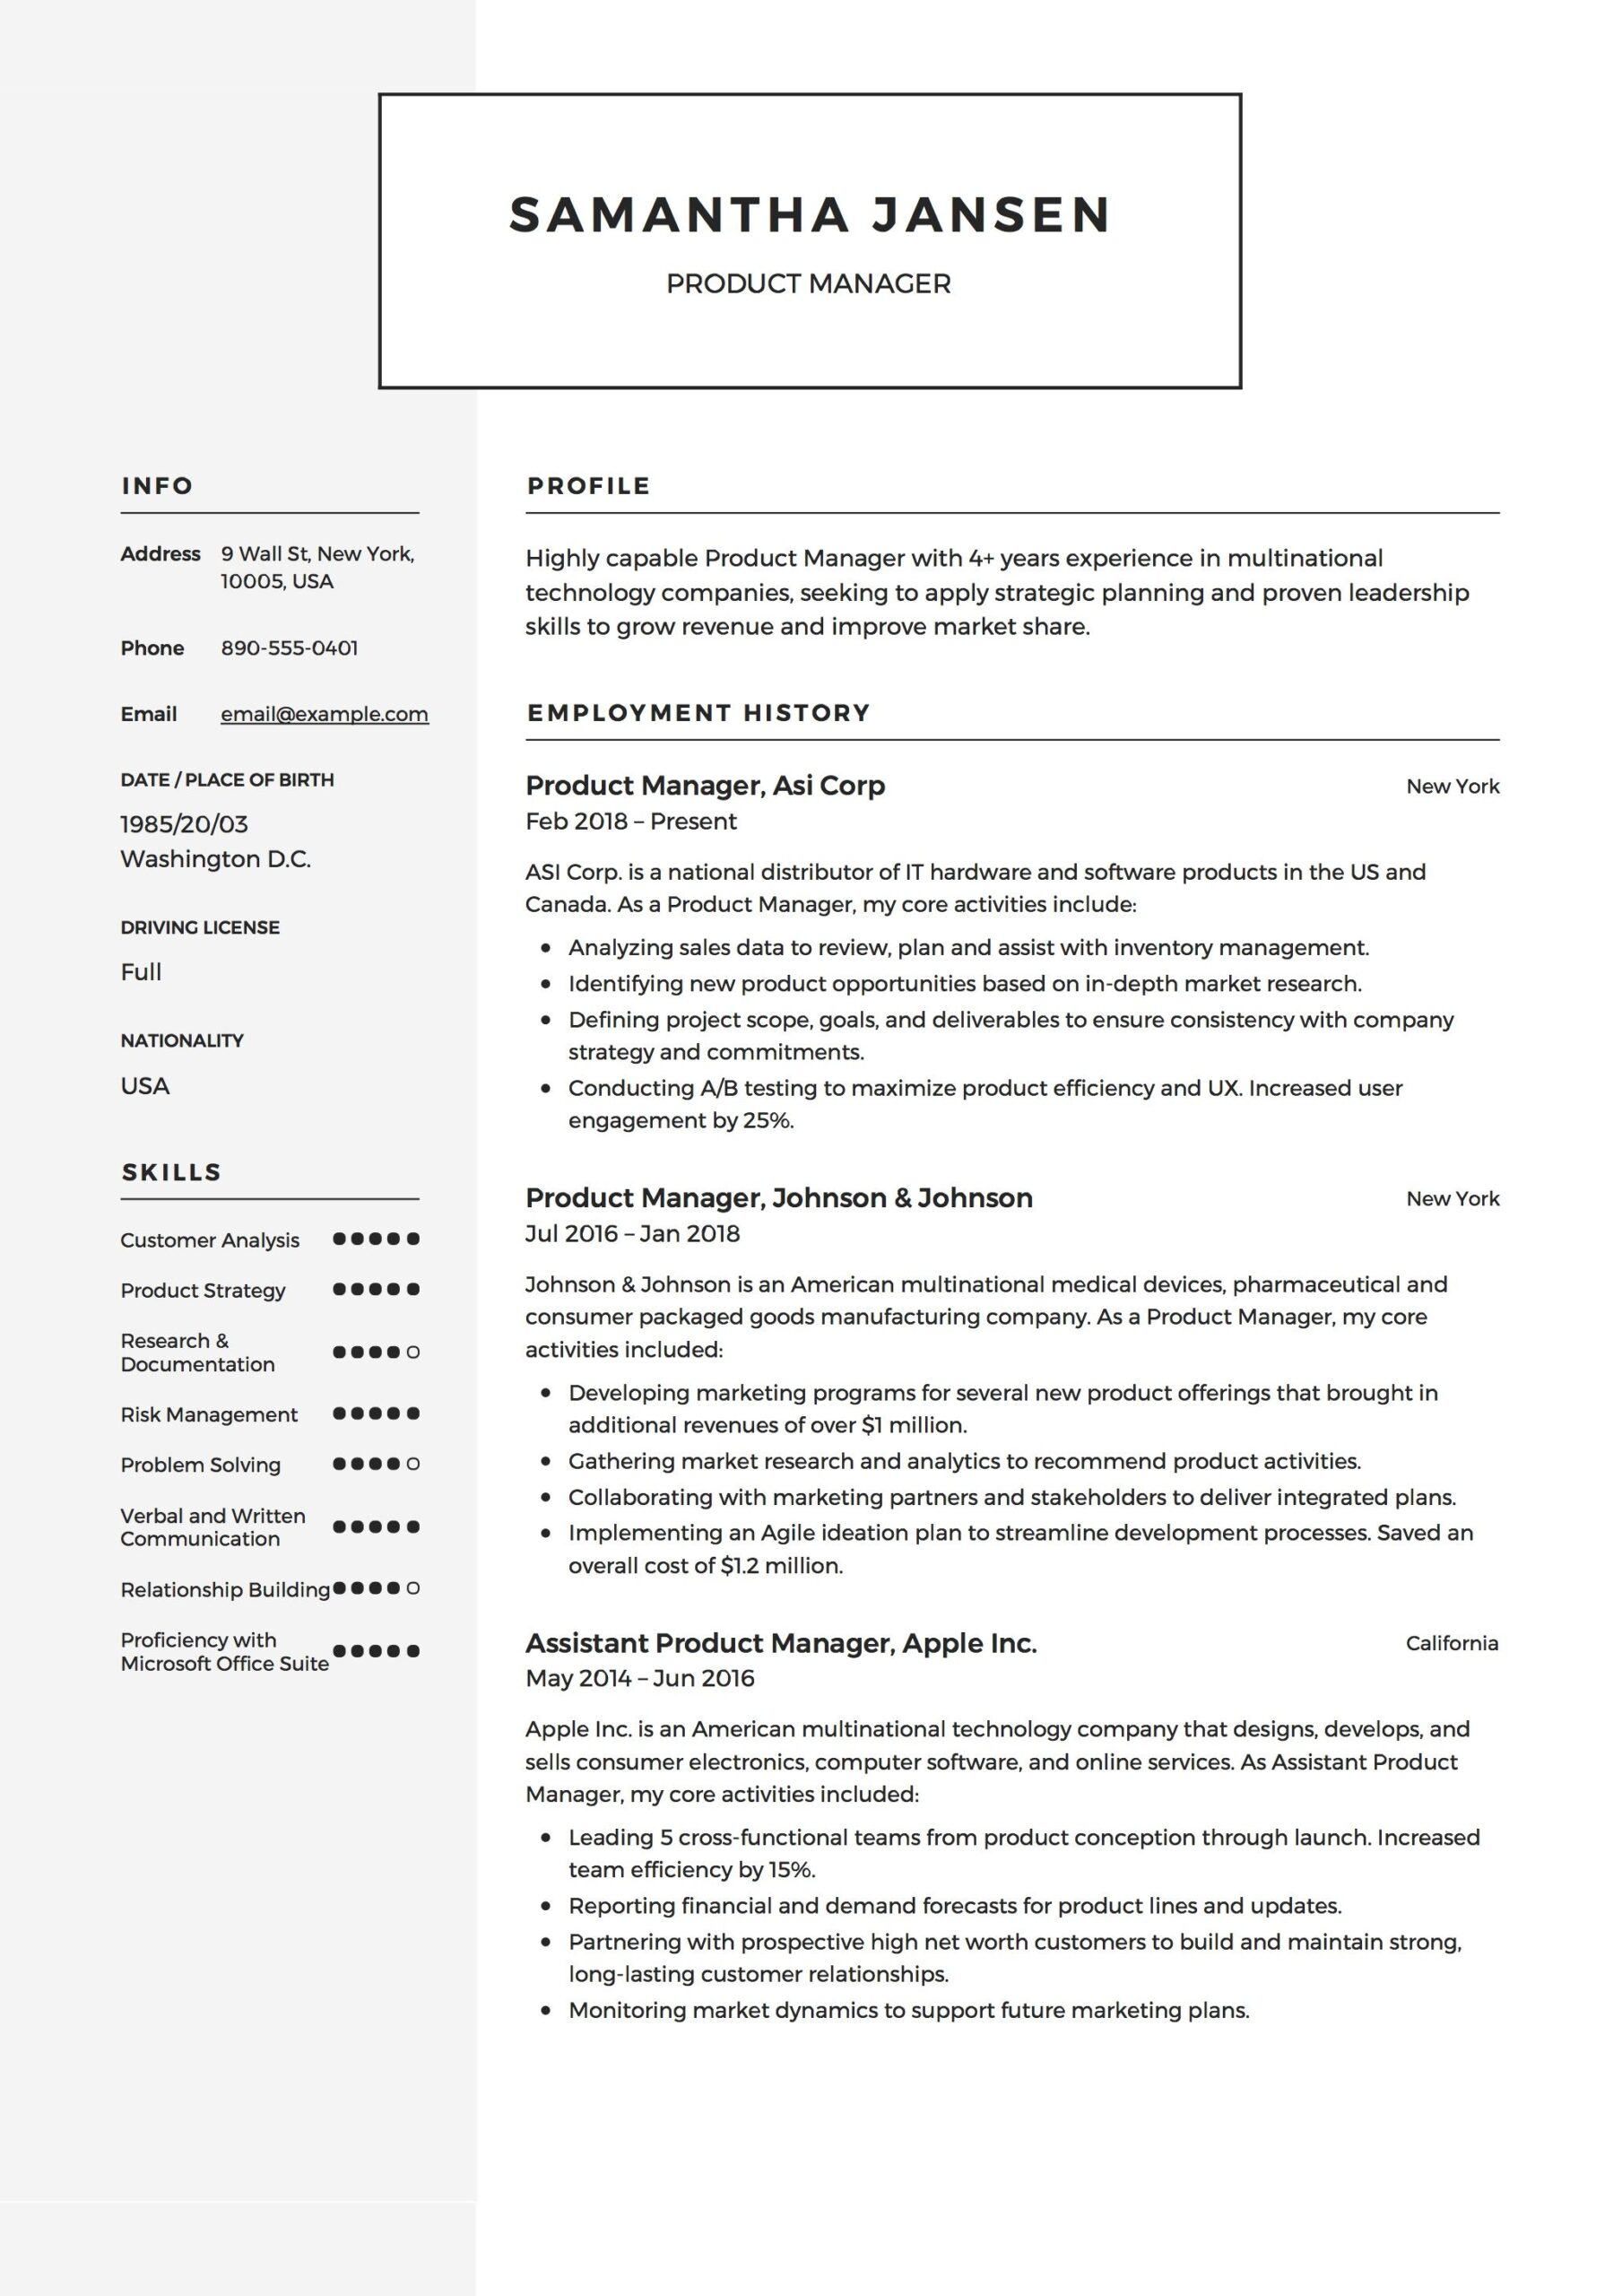 product manager resume sample template example cv formal design examples pdf asset Resume Product Manager Resume Template